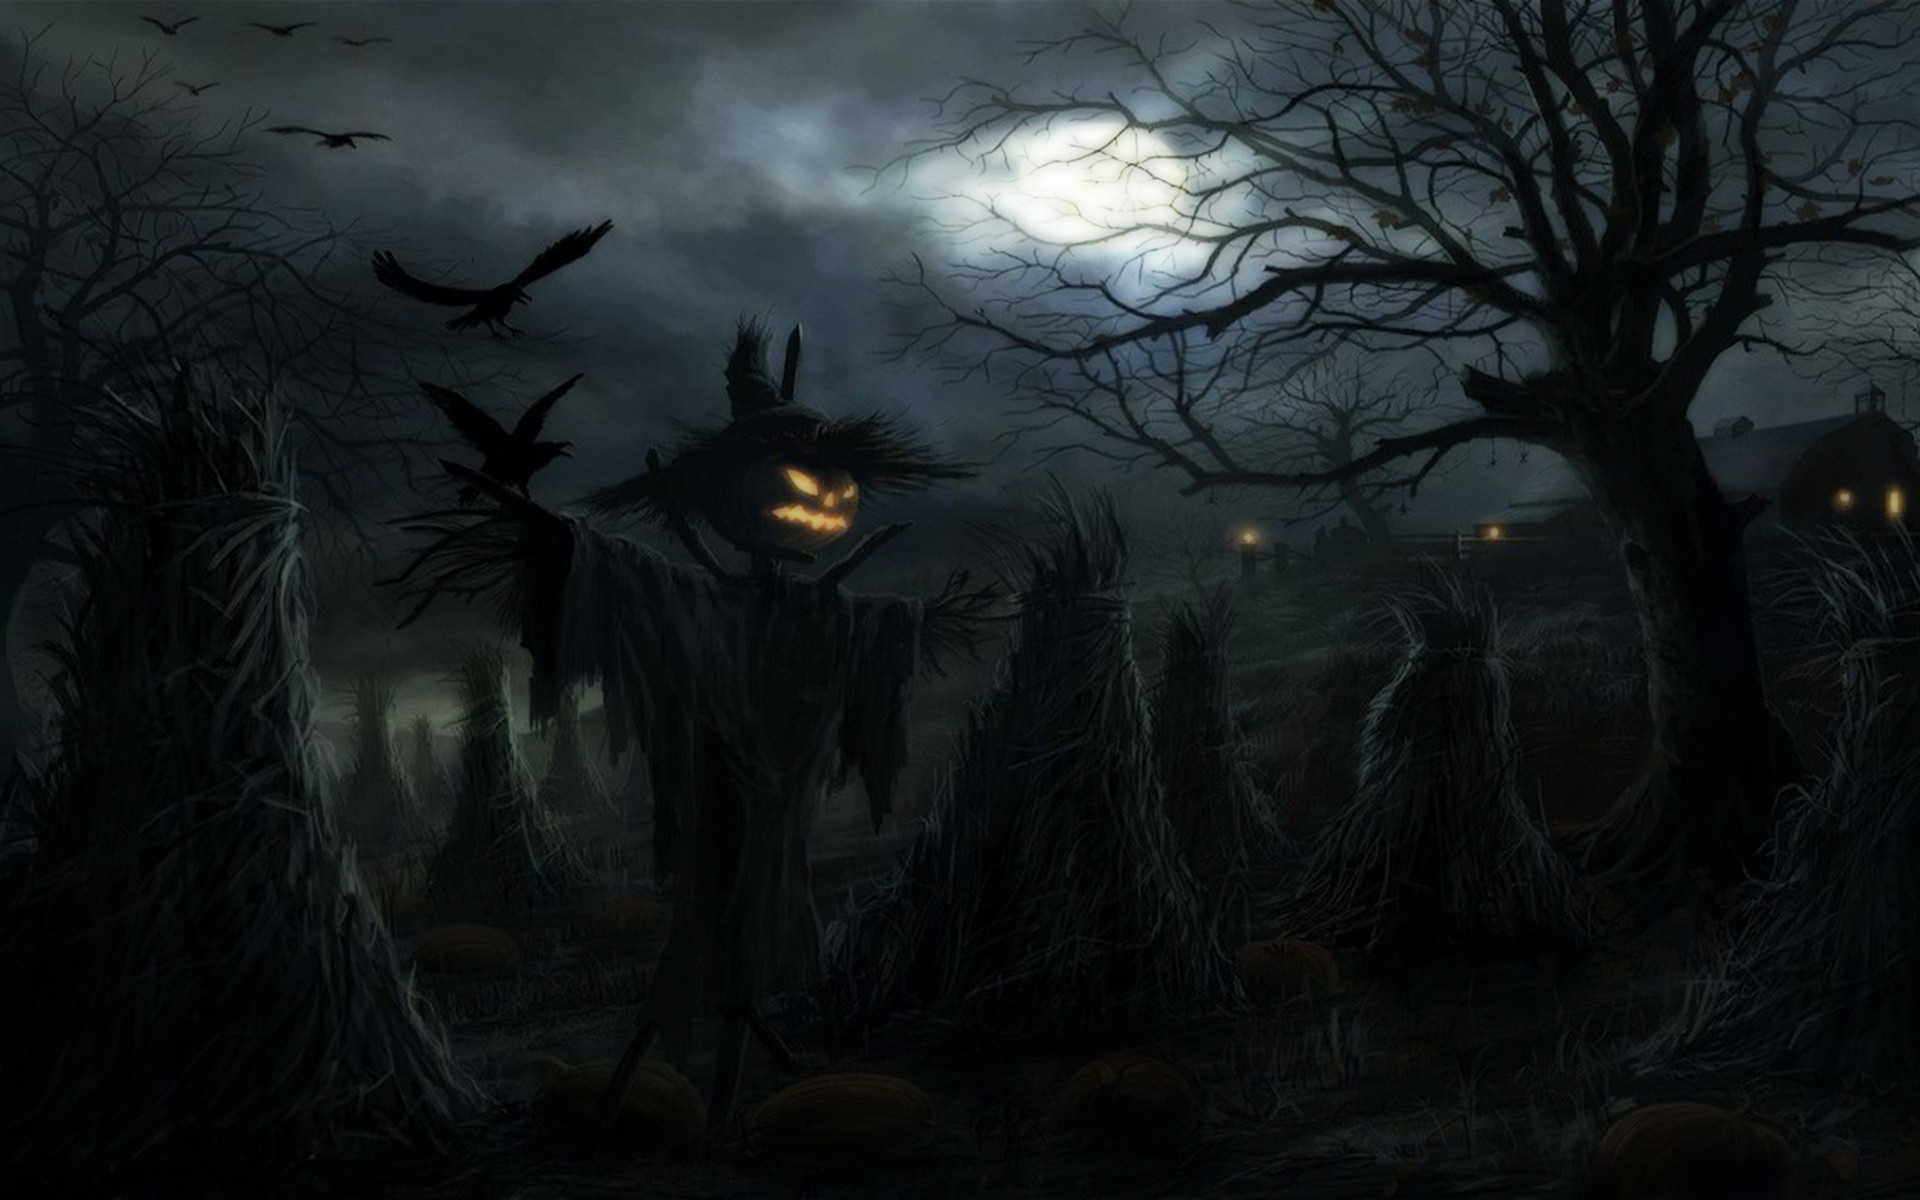 1920x1200 Scary Night - After Dark Wallpaper (21575859) - Fanpop